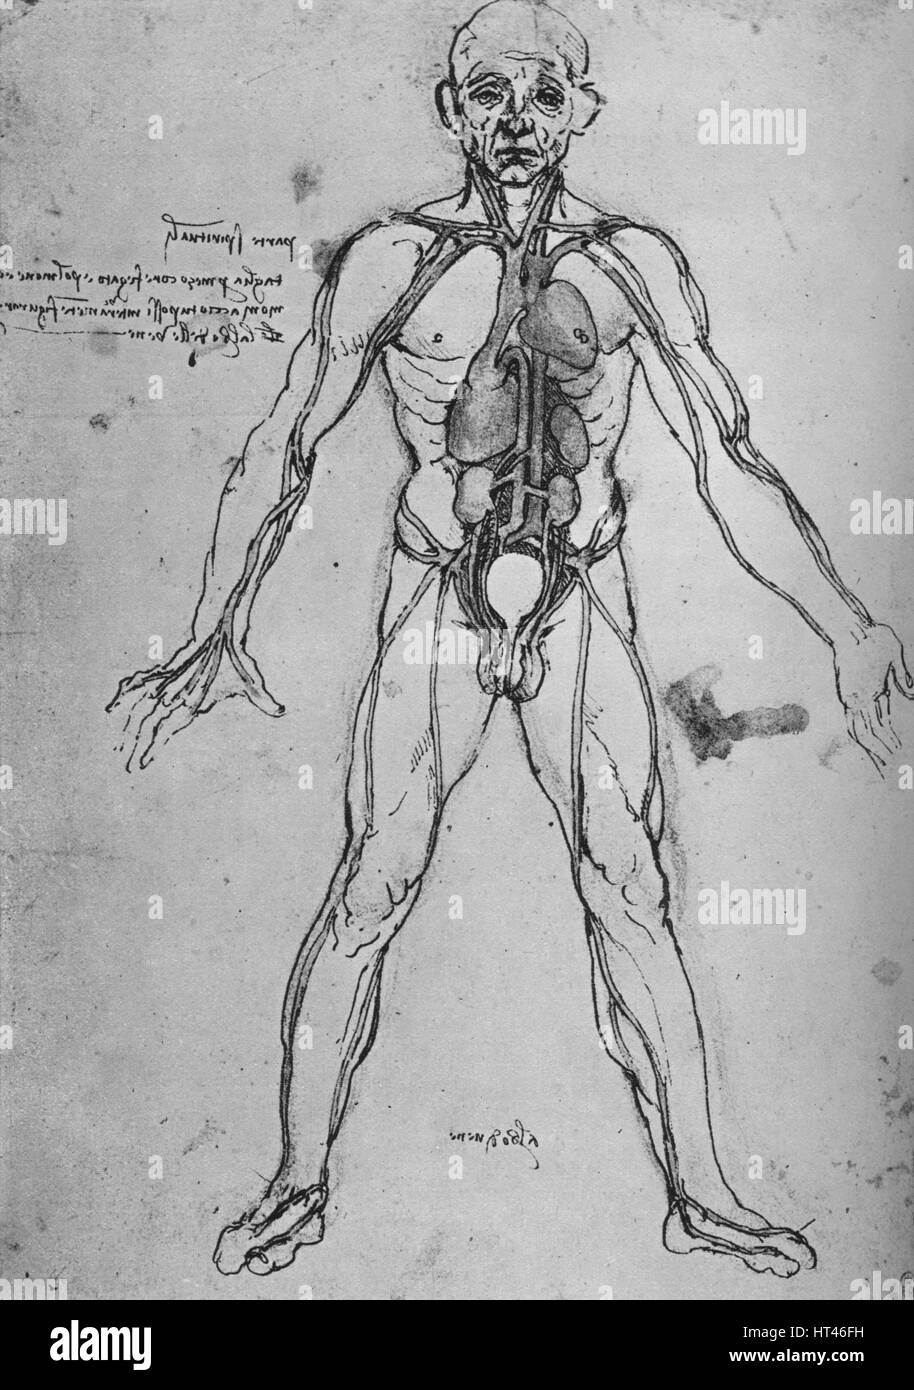 Drawn By Leonardo Da Vinci Stockfotos & Drawn By Leonardo Da Vinci ...